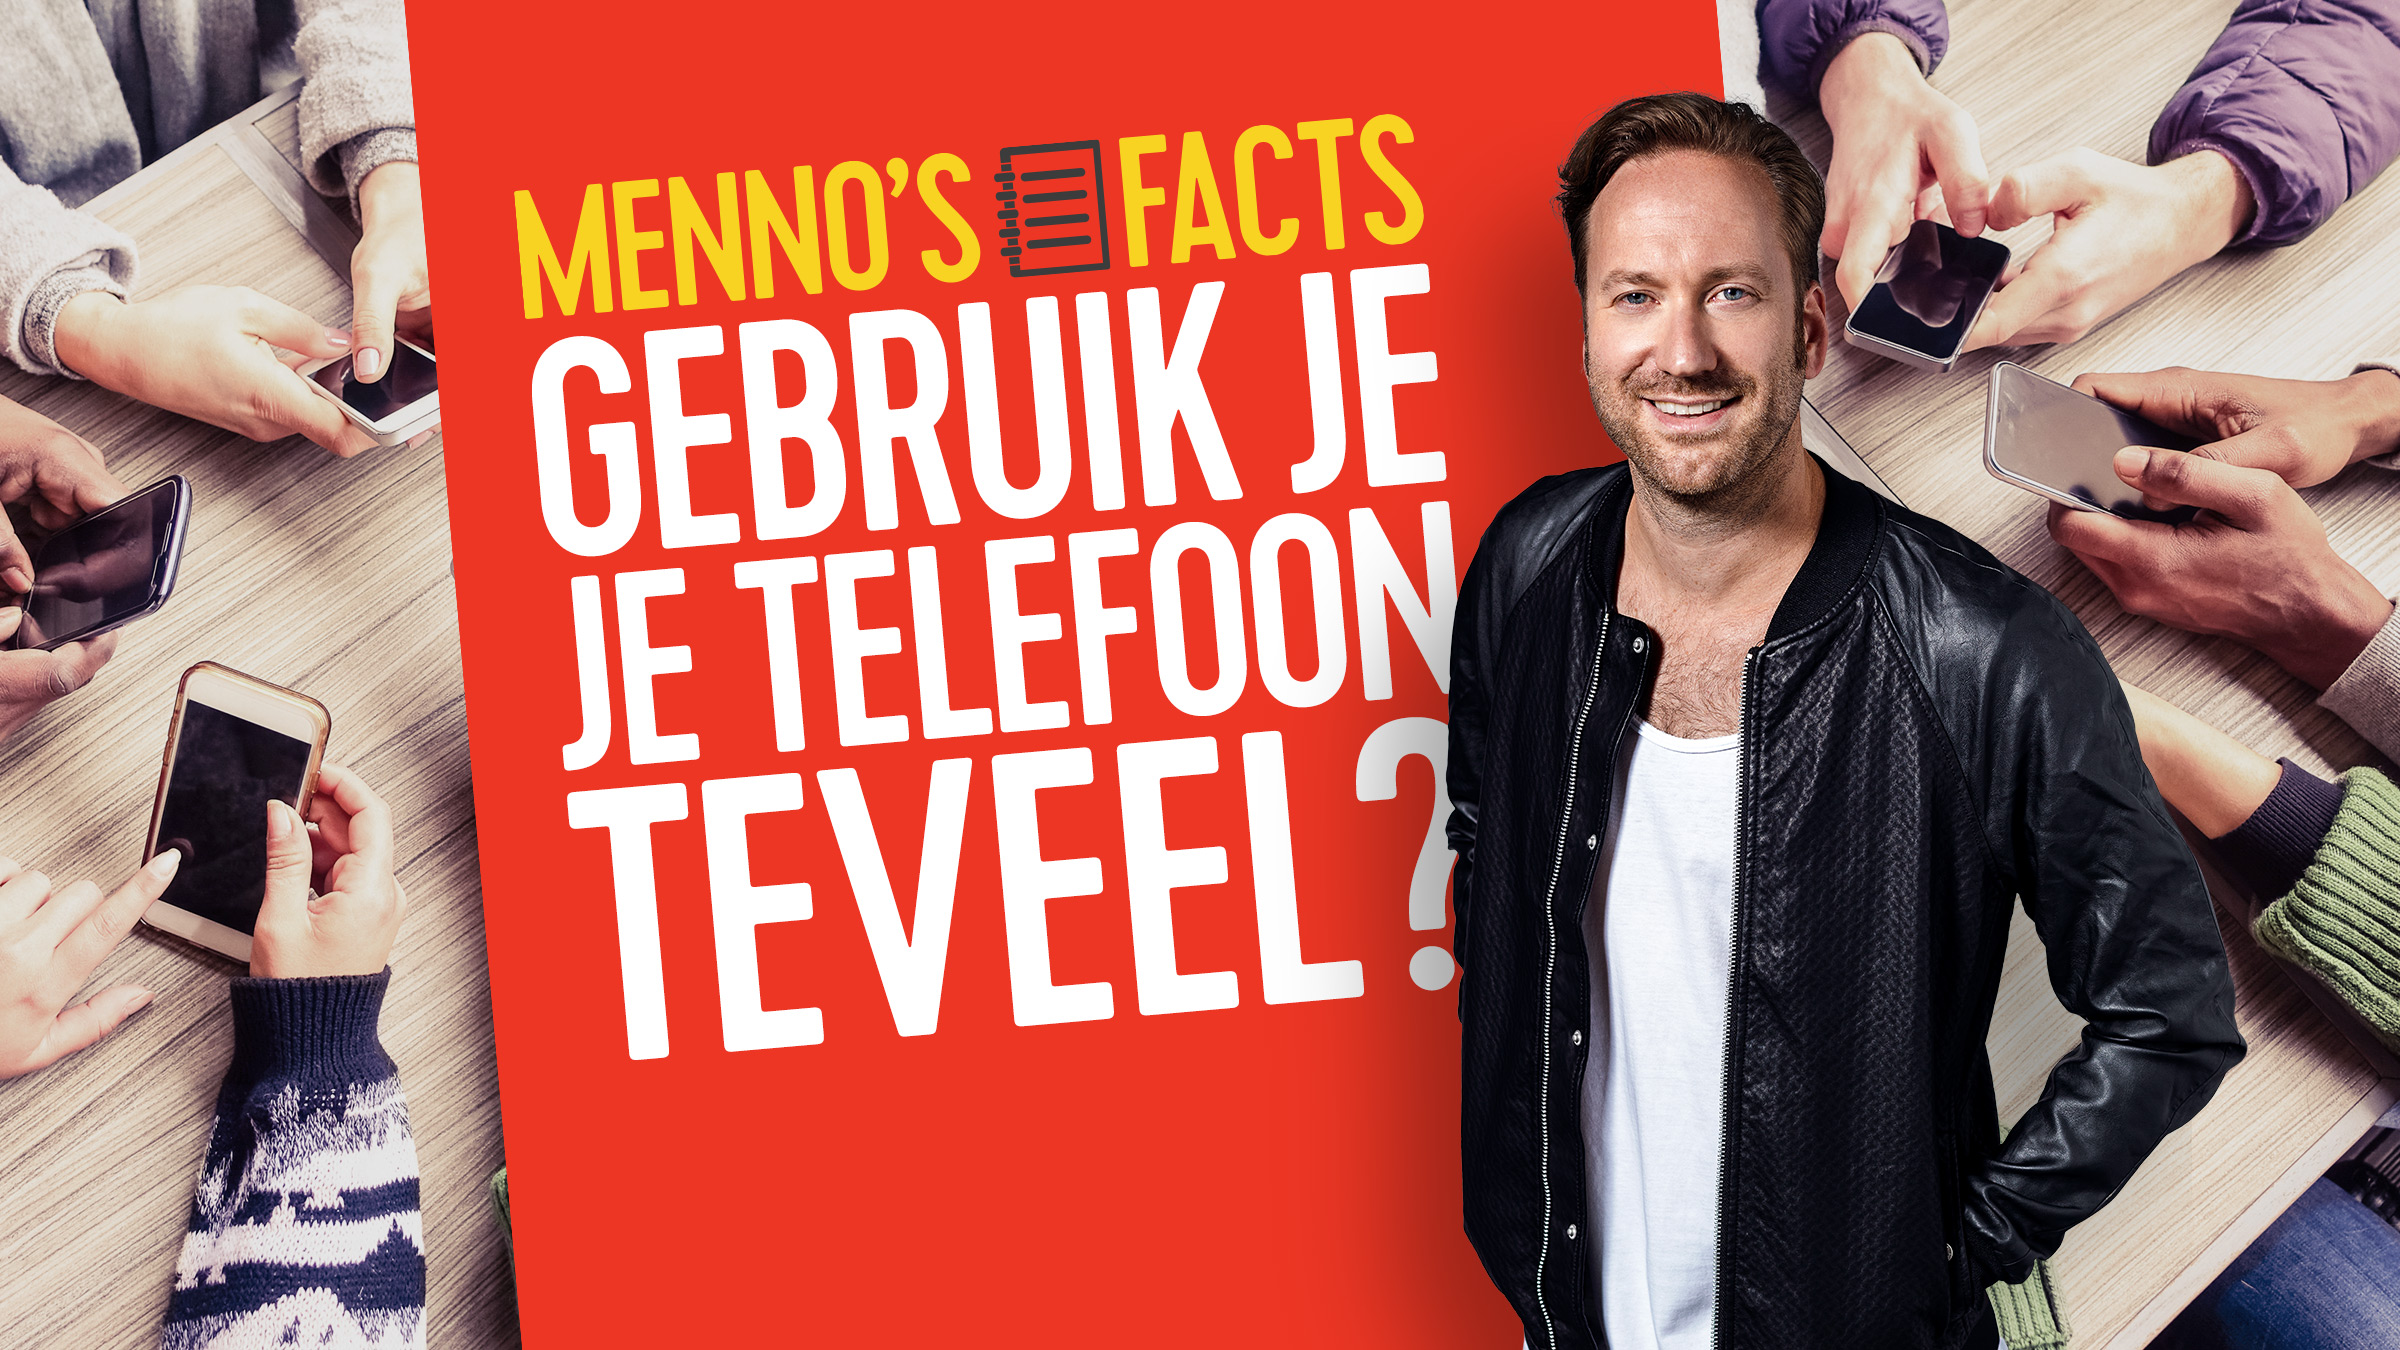 Qmusic teaser basis mennosfacts17 telefoon